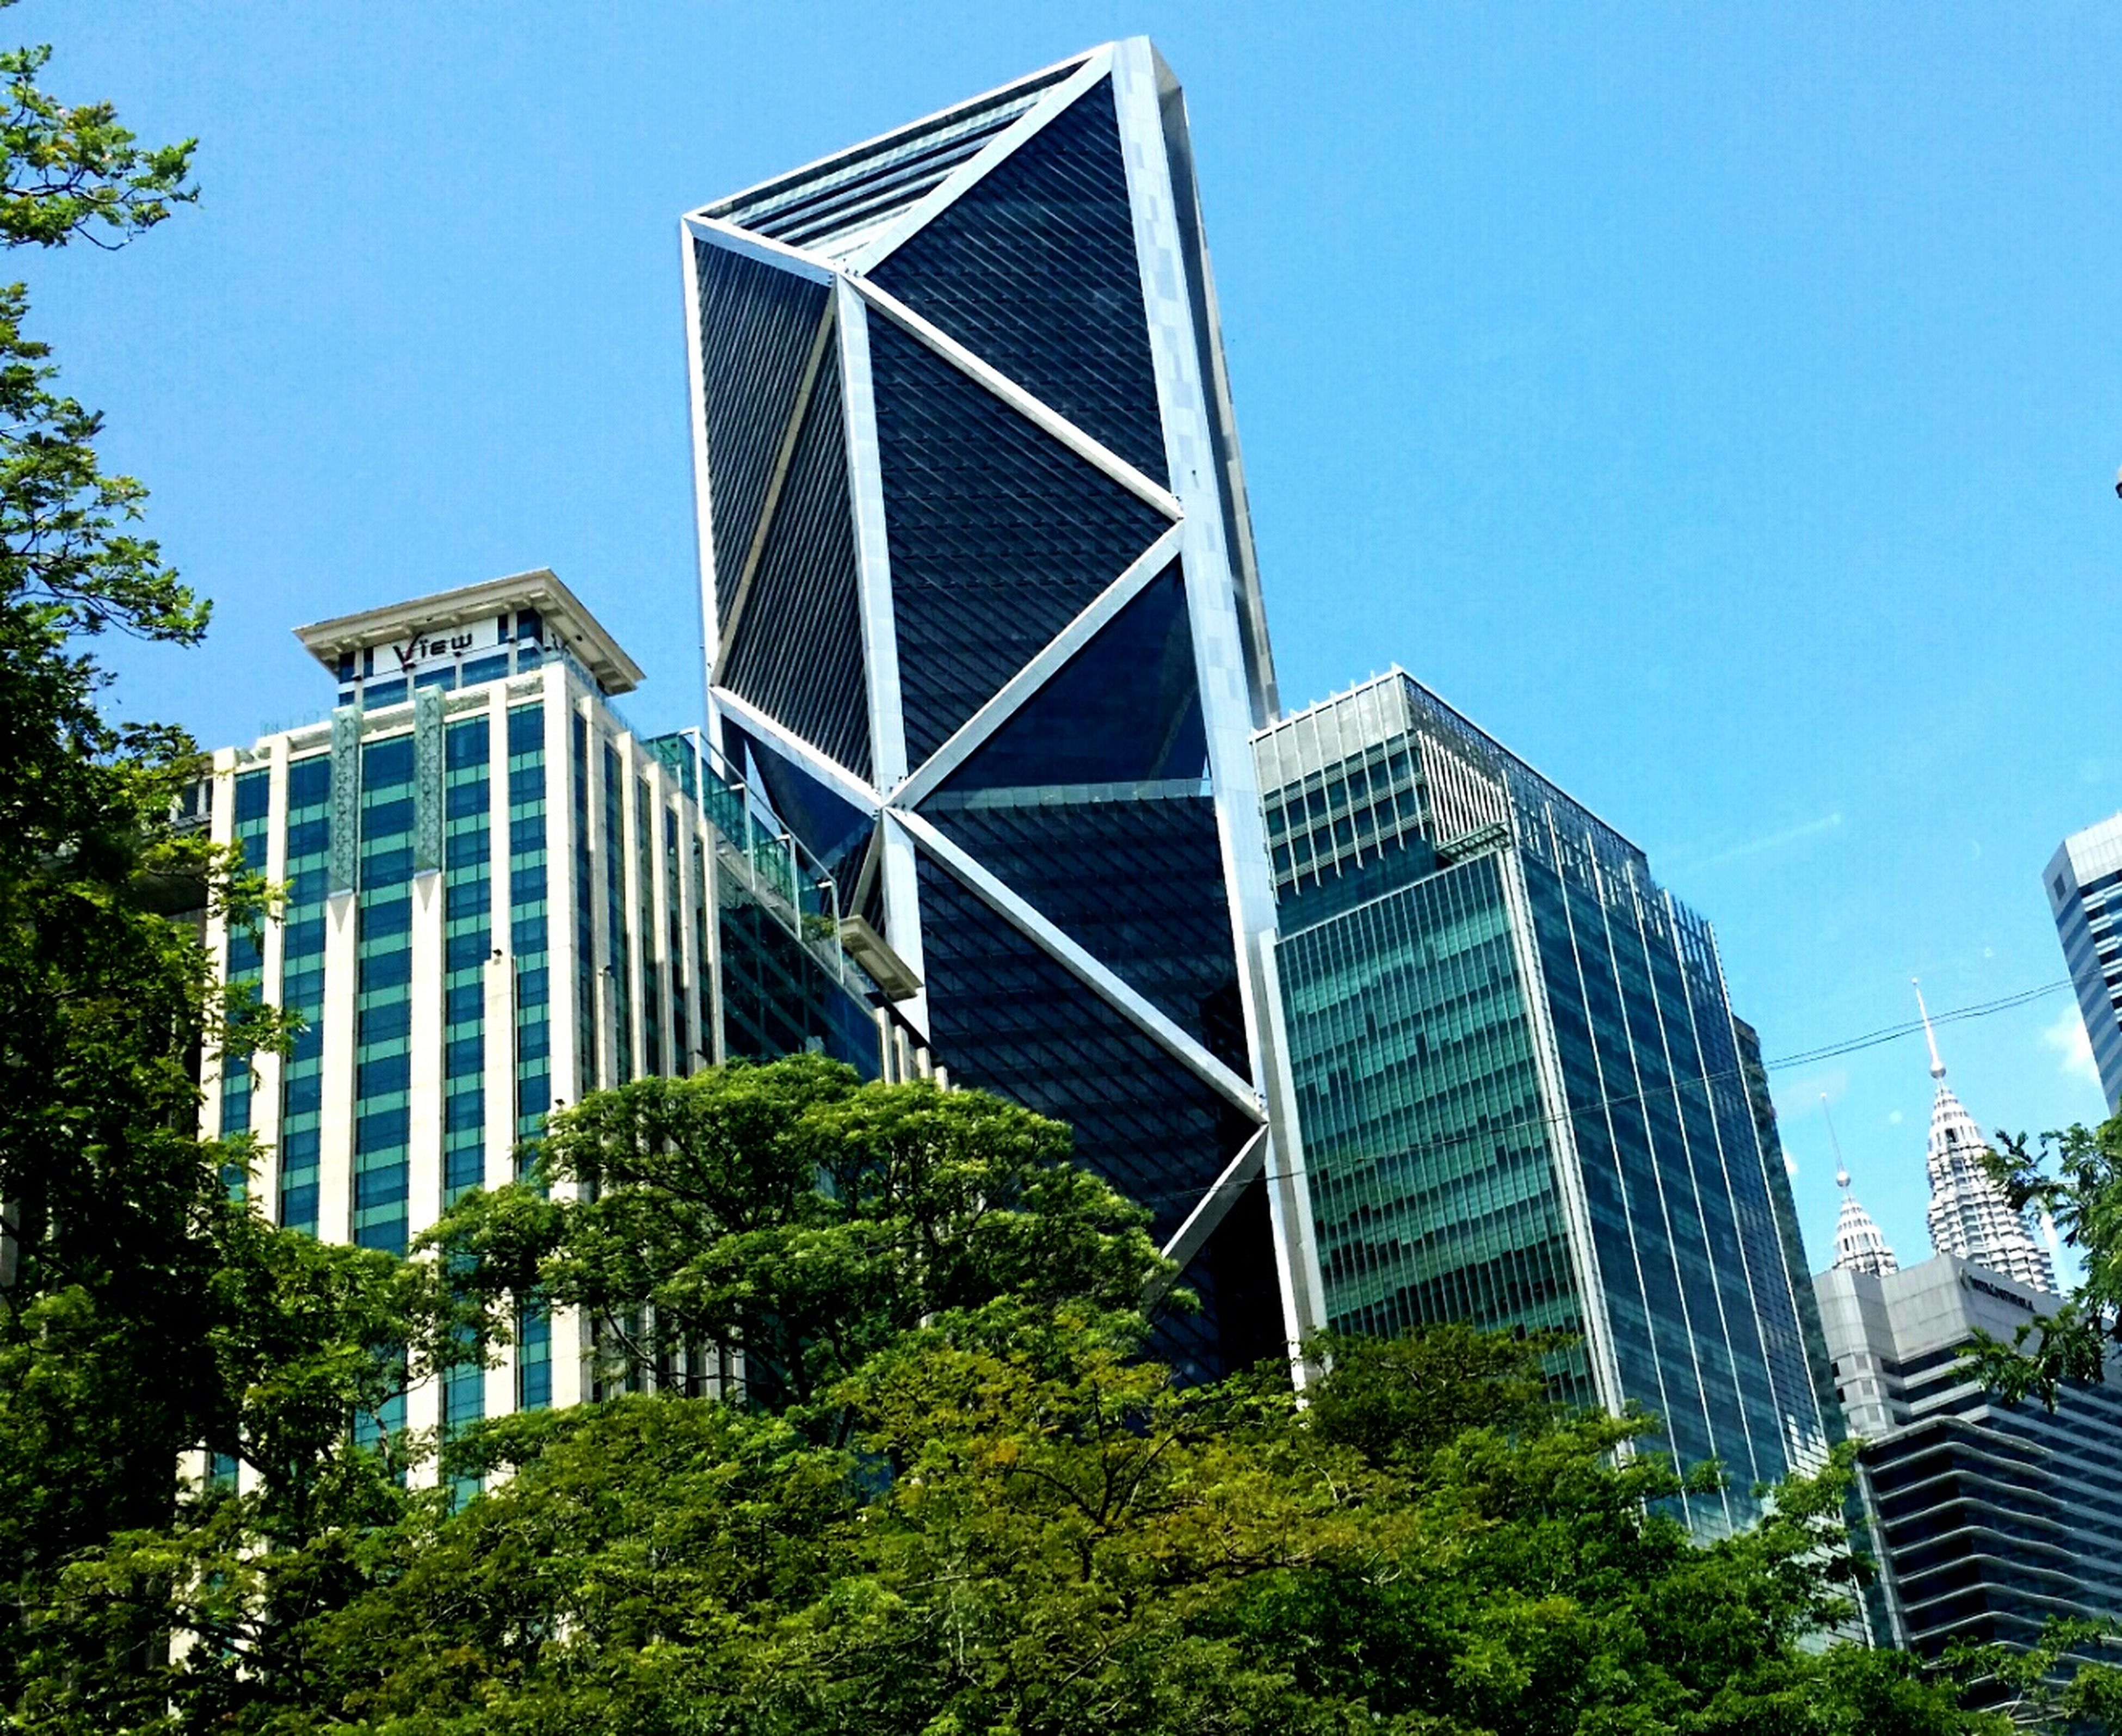 architecture, tree, built structure, low angle view, building exterior, skyscraper, modern, city, office building, tall - high, clear sky, blue, tower, travel destinations, capital cities, growth, place of work, development, day, tall, sky, city life, outdoors, building story, architectural feature, financial district, urban skyline, treetop, green color